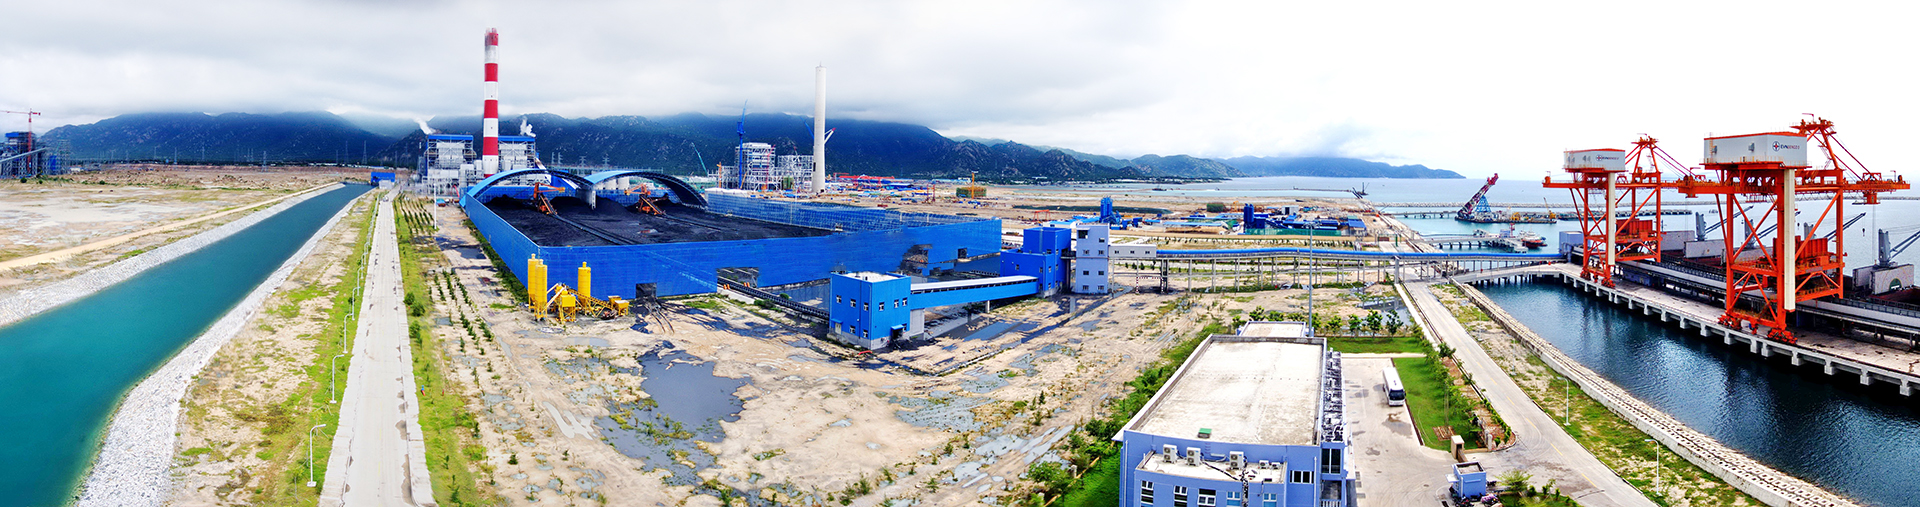 VINHTAN THERMAL POWER COMPANY